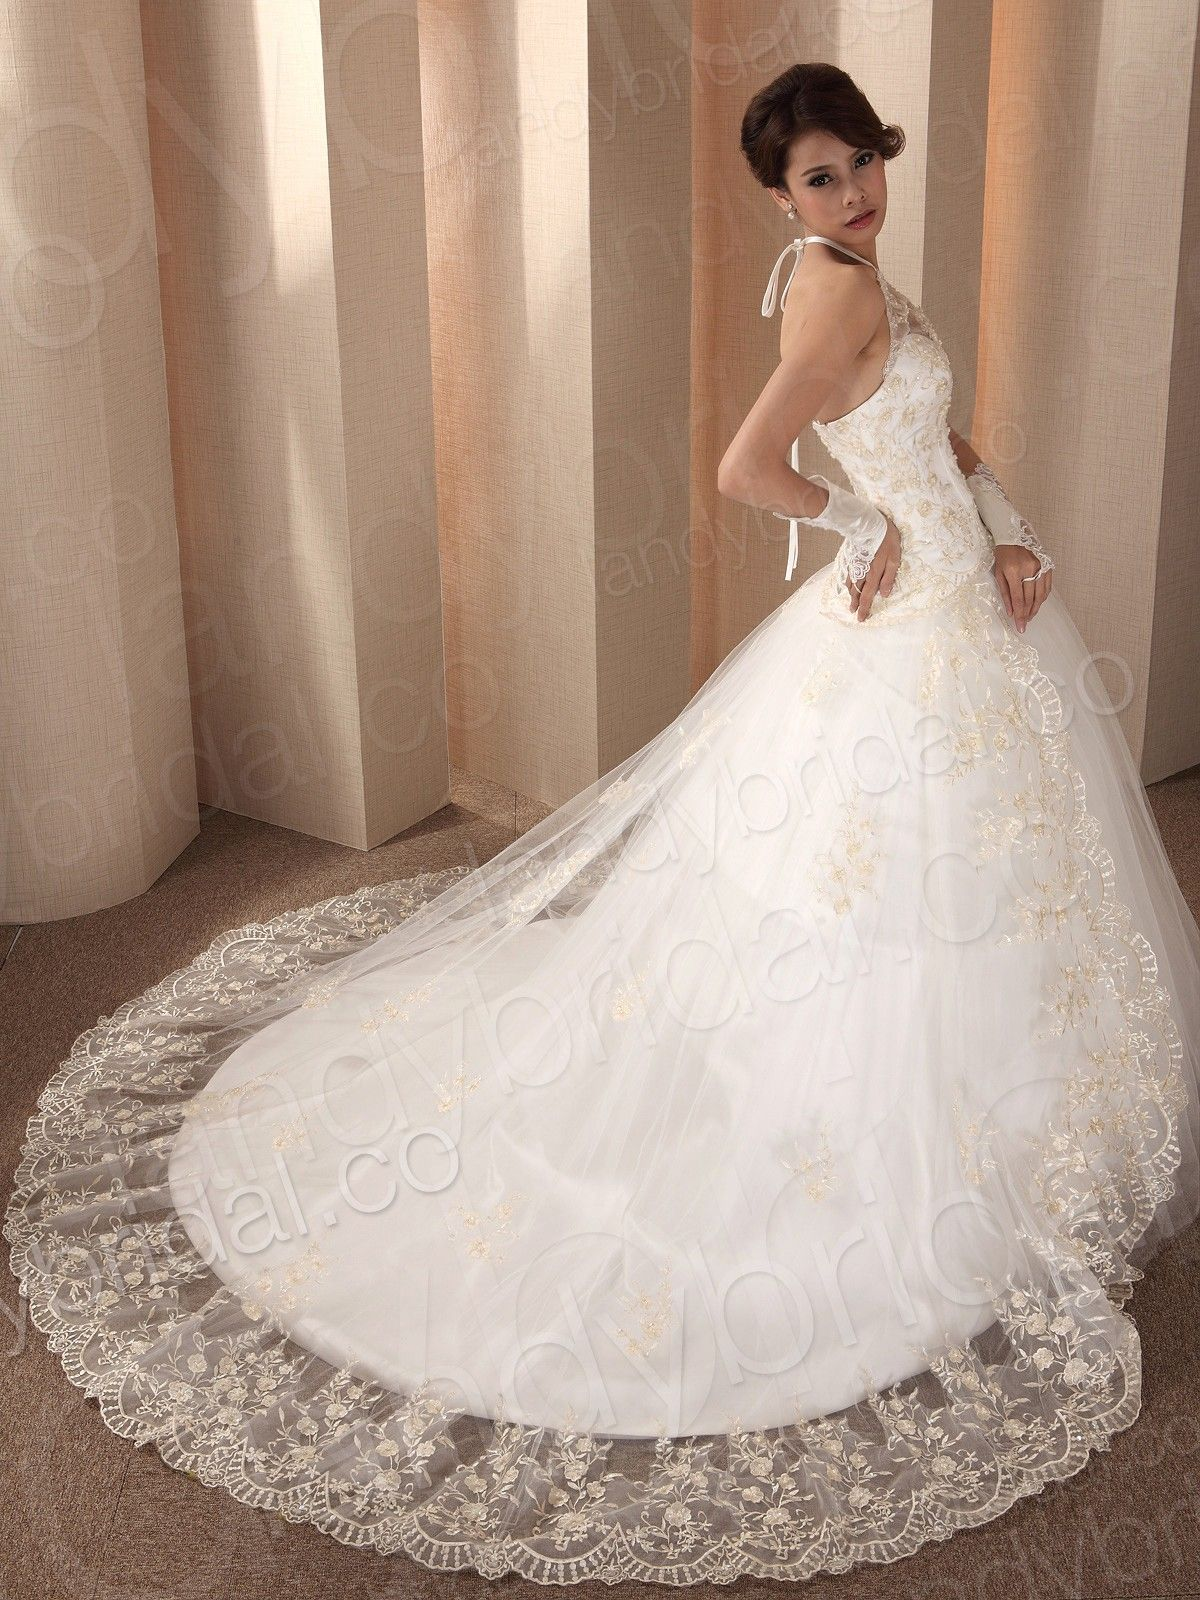 Lace Corset Ball Gown Wedding Dresses